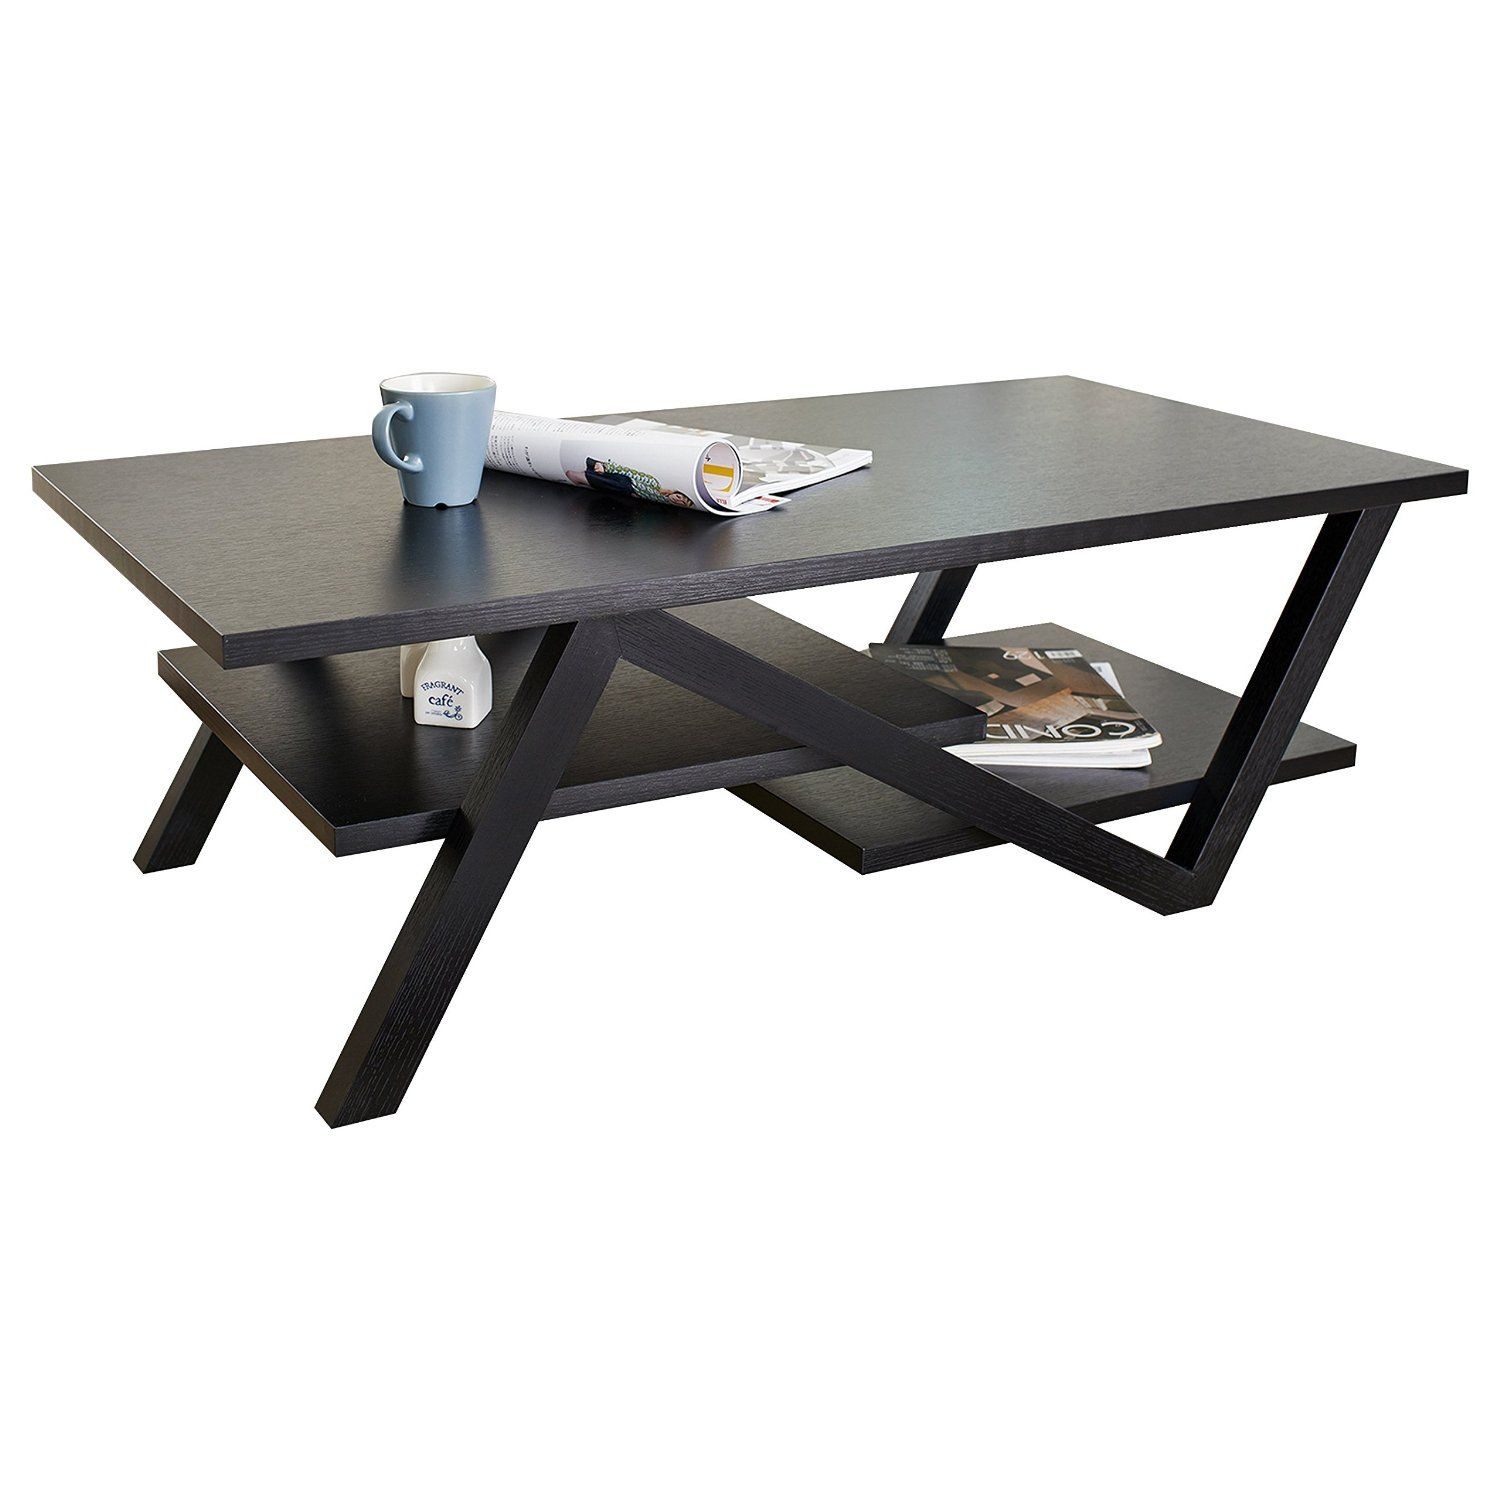 Amazon Com Iohomes Finley Rectangular Coffee Table Black Kitchen Dining Coffee Table Furniture Rectangular Coffee Table Coffee Table Frame [ 1500 x 1500 Pixel ]